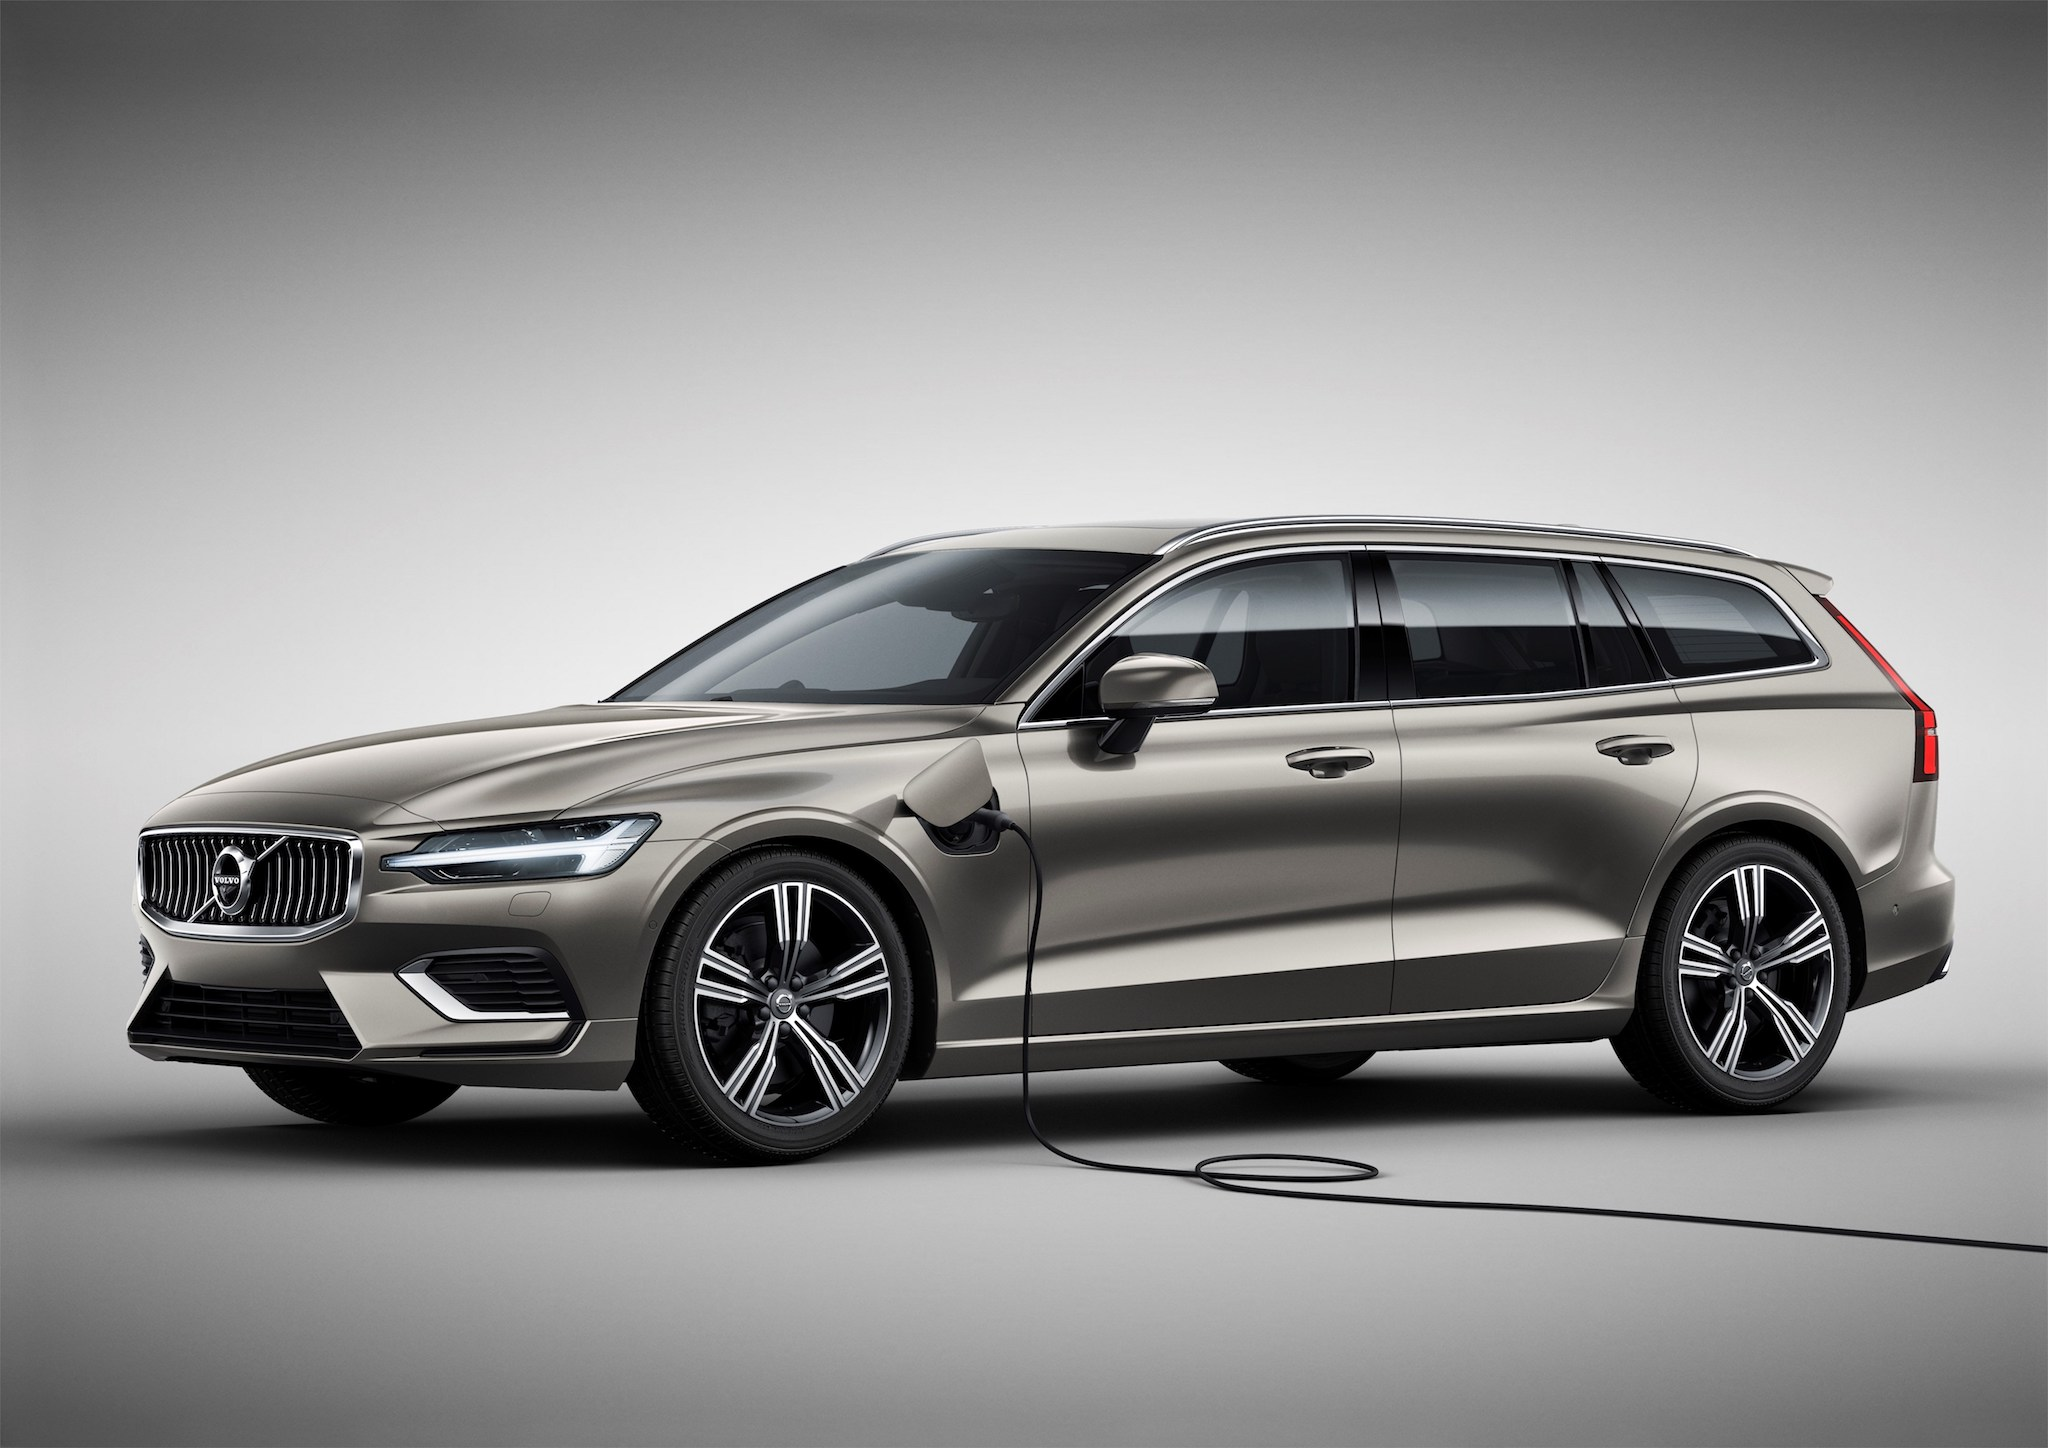 The V60 will have not one but two plug-in hybrid options, with a choice of either 340hp in the T6 or 390hp in the T8.